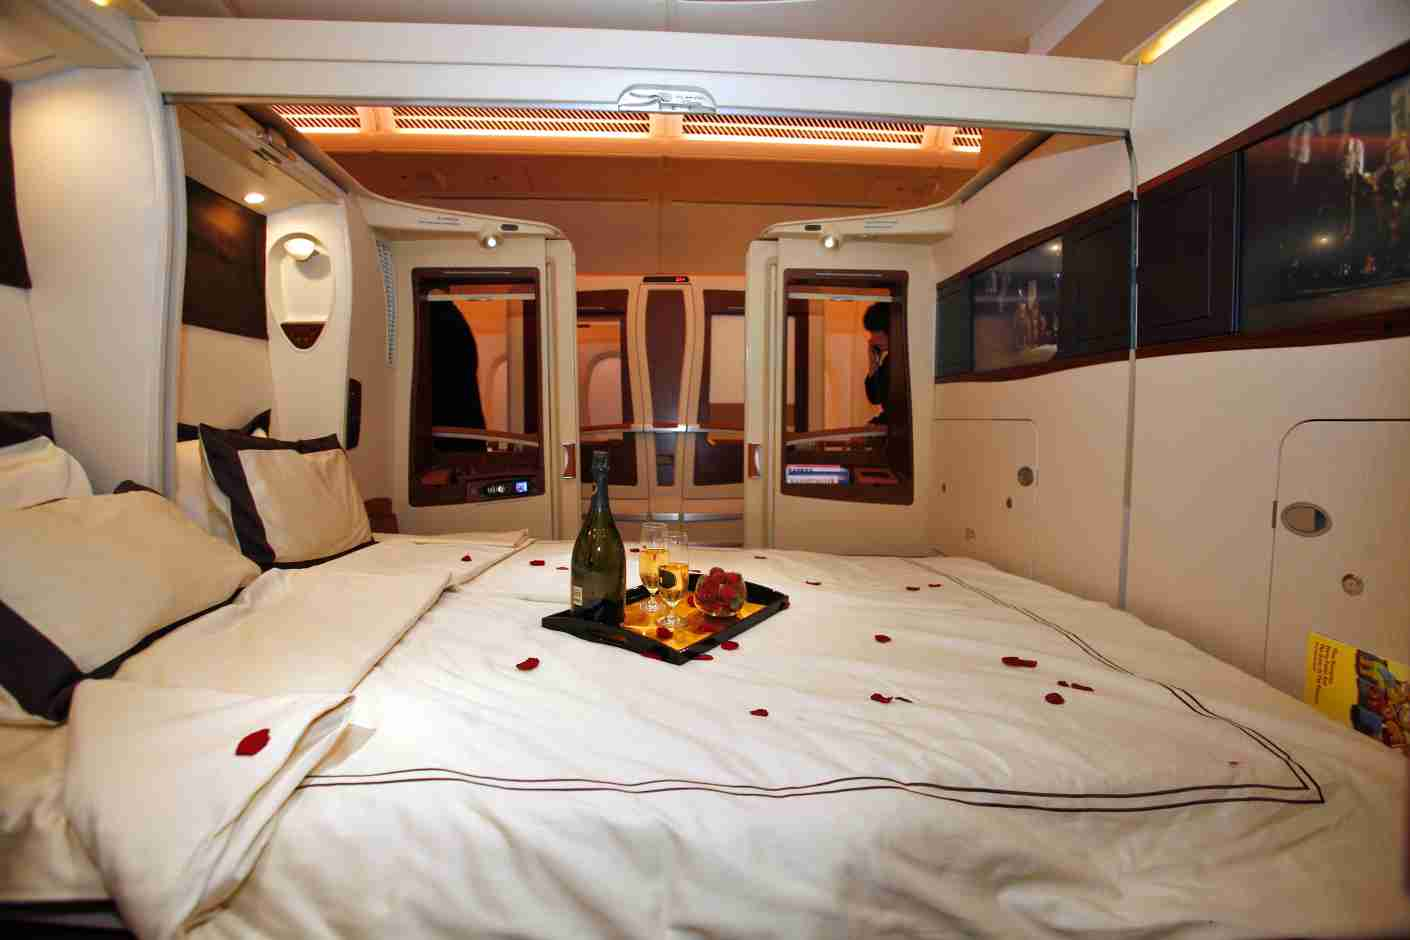 TOULOUSE, FRANCE - OCTOBER 15: A general view of inside the first class twin cabin section of the new Singapre Airlines Airbus A380 on October 15, 2007 in Toulouse, France. The first A380, the world